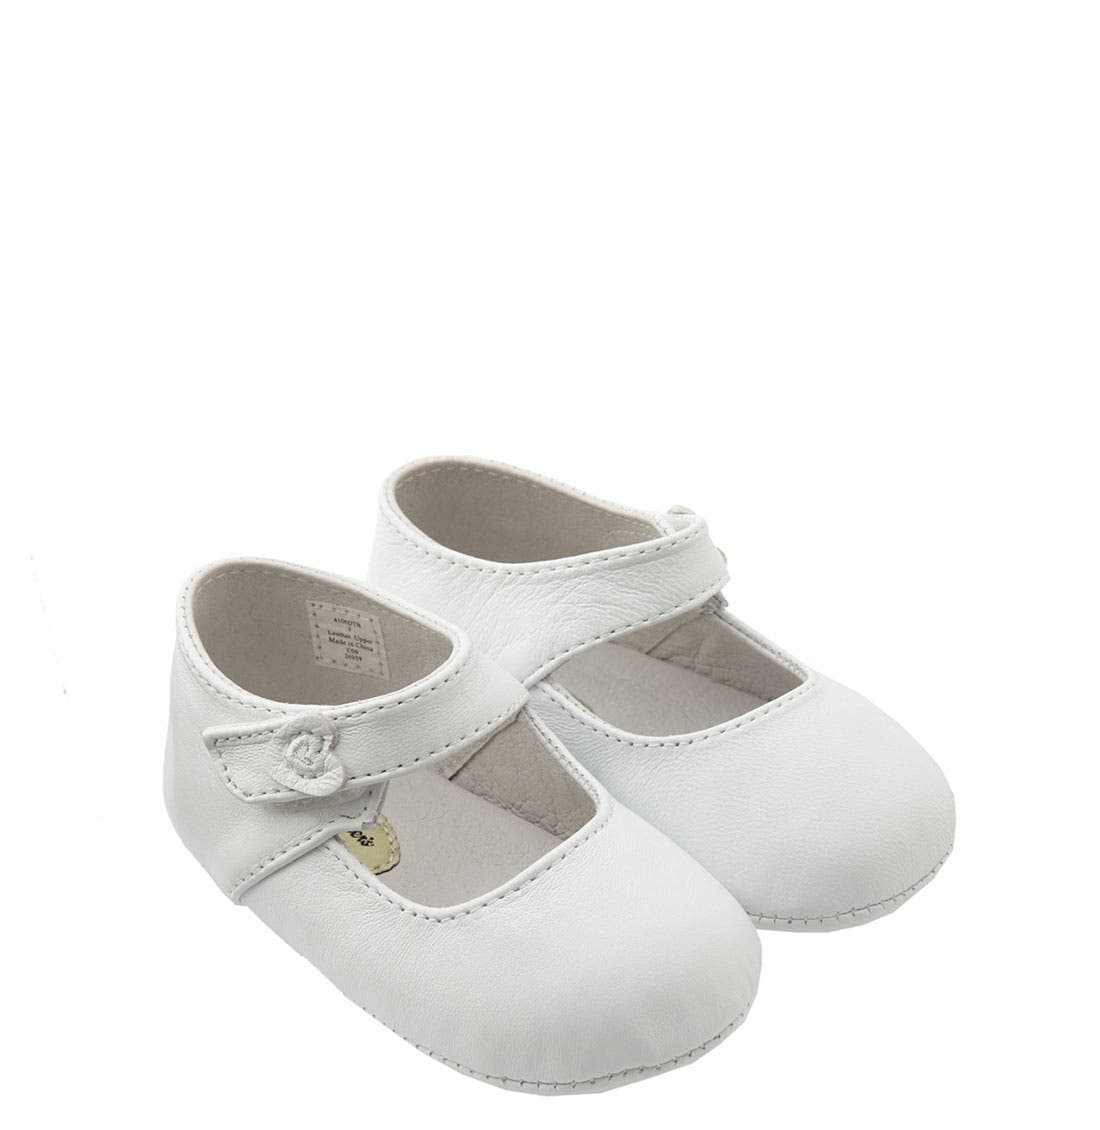 Main Image - Designer's Touch 'Hartlee' Crib Shoe (Baby)